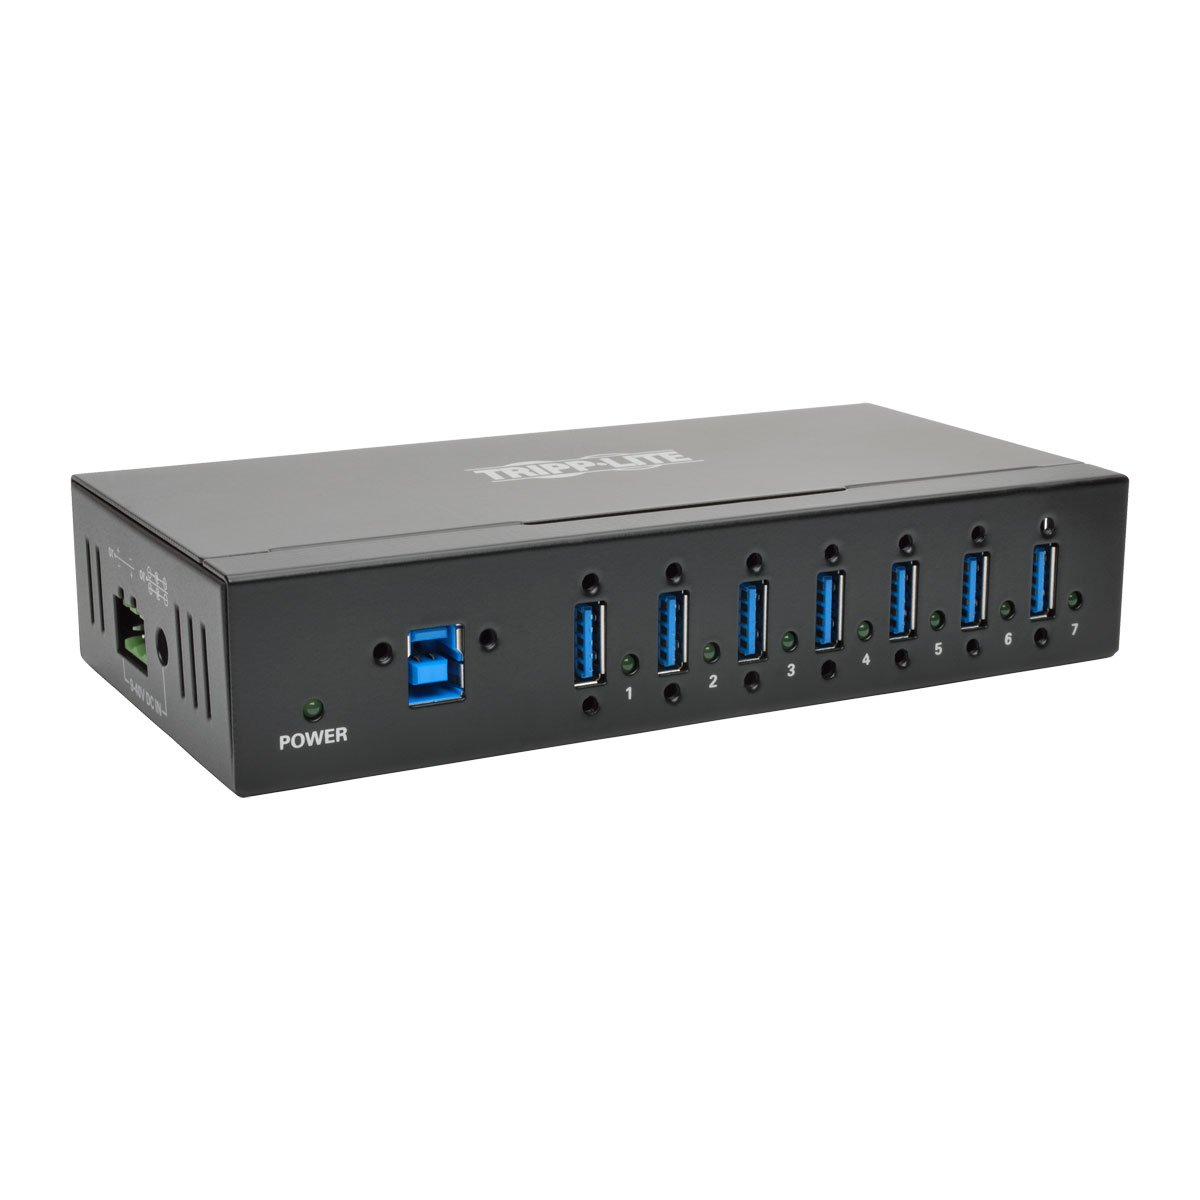 Tripp Lite 7-Port Industrial USB-A 3.0 SuperSpeed Hub with 15KV ESD Immunity, Metal Case, Mountable, USB Type-A (U360-007-IND)